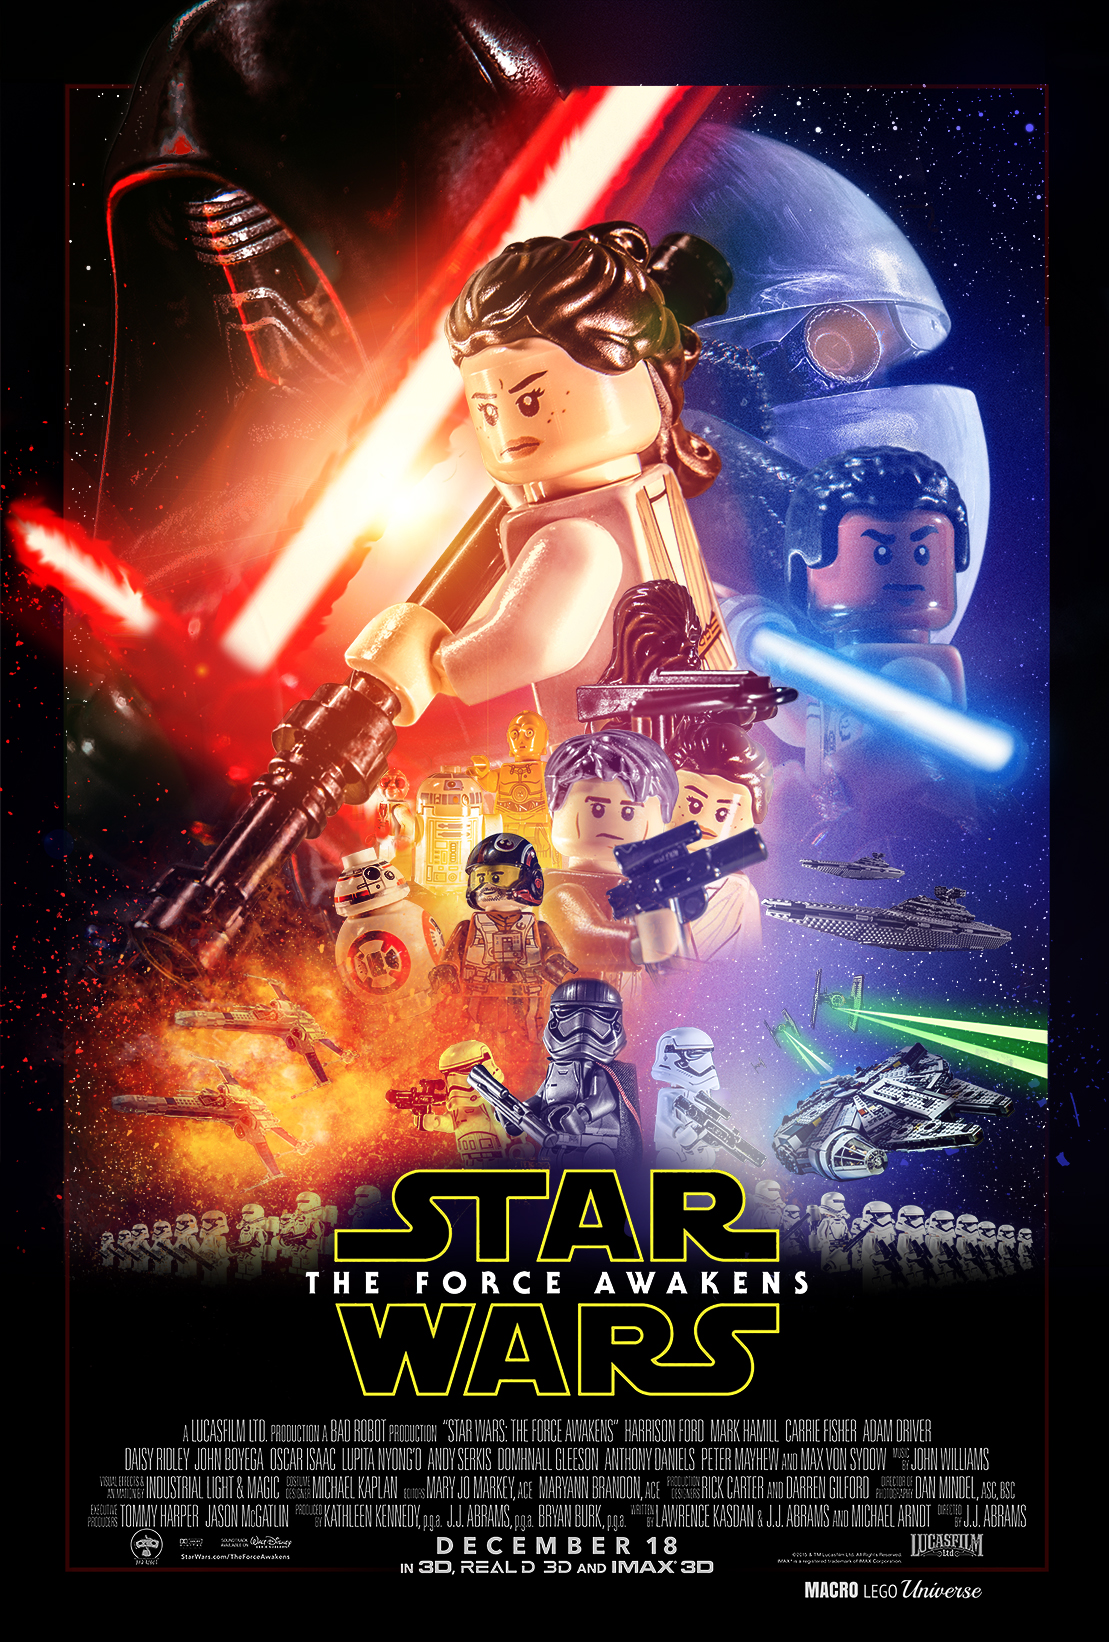 TFA Poster LEGO REDUX Low Res.jpg